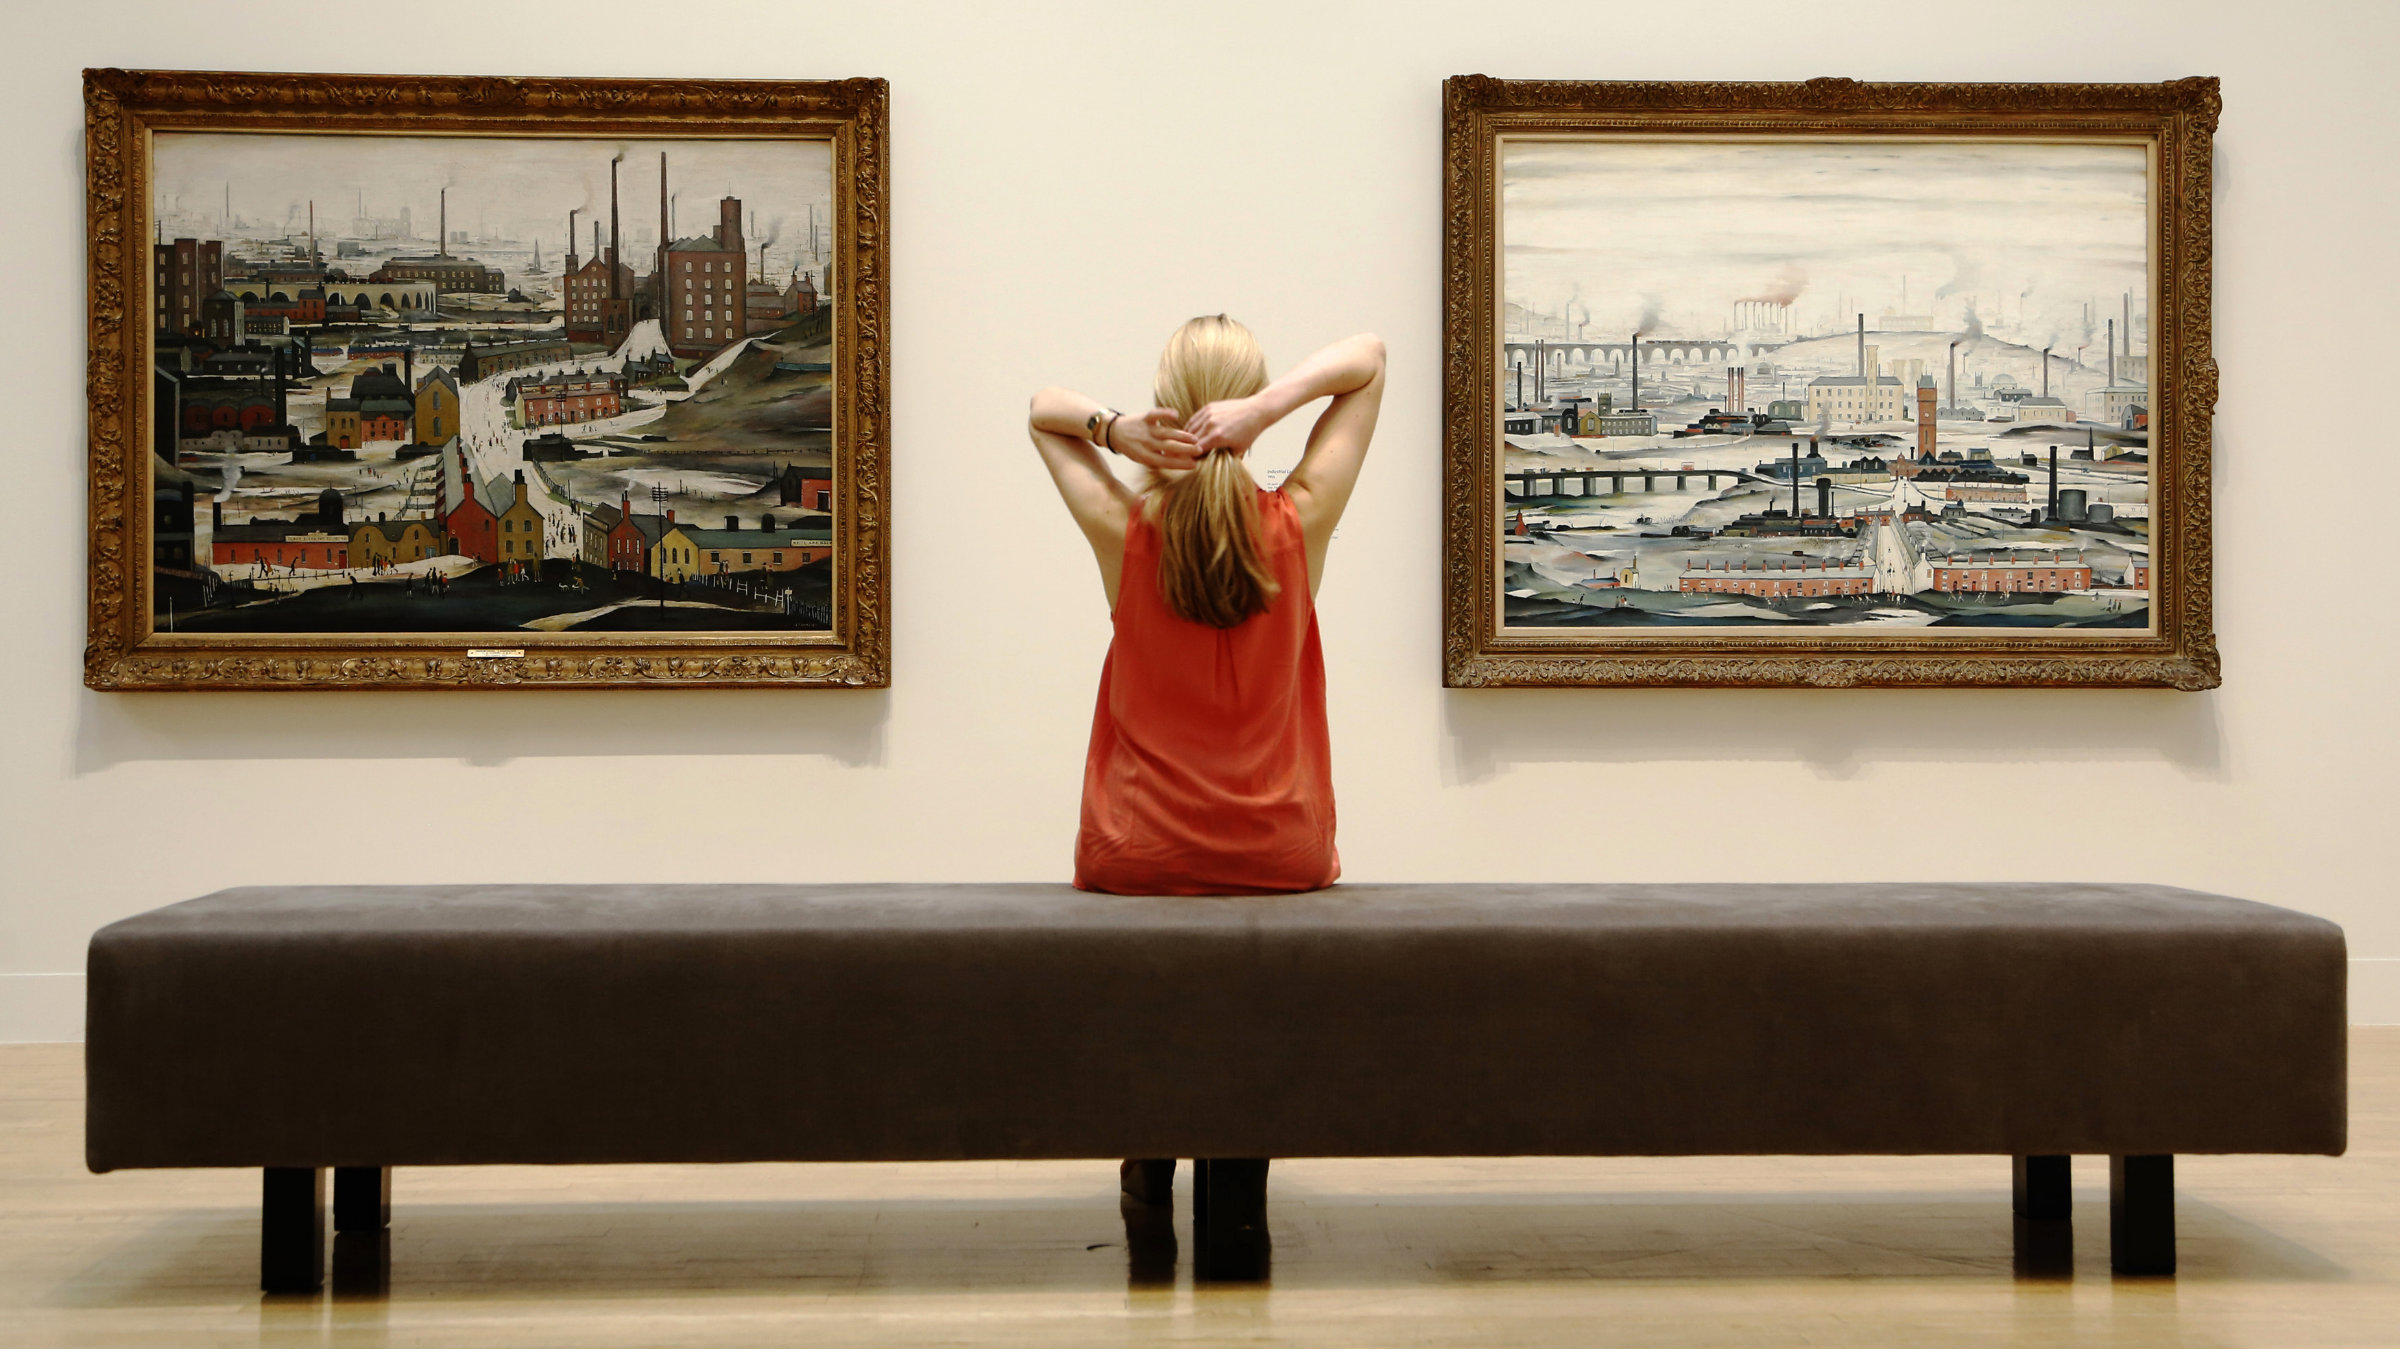 Wealthy Outsider Artist With >> High End Art Is One Of The Most Manipulated Markets In The World